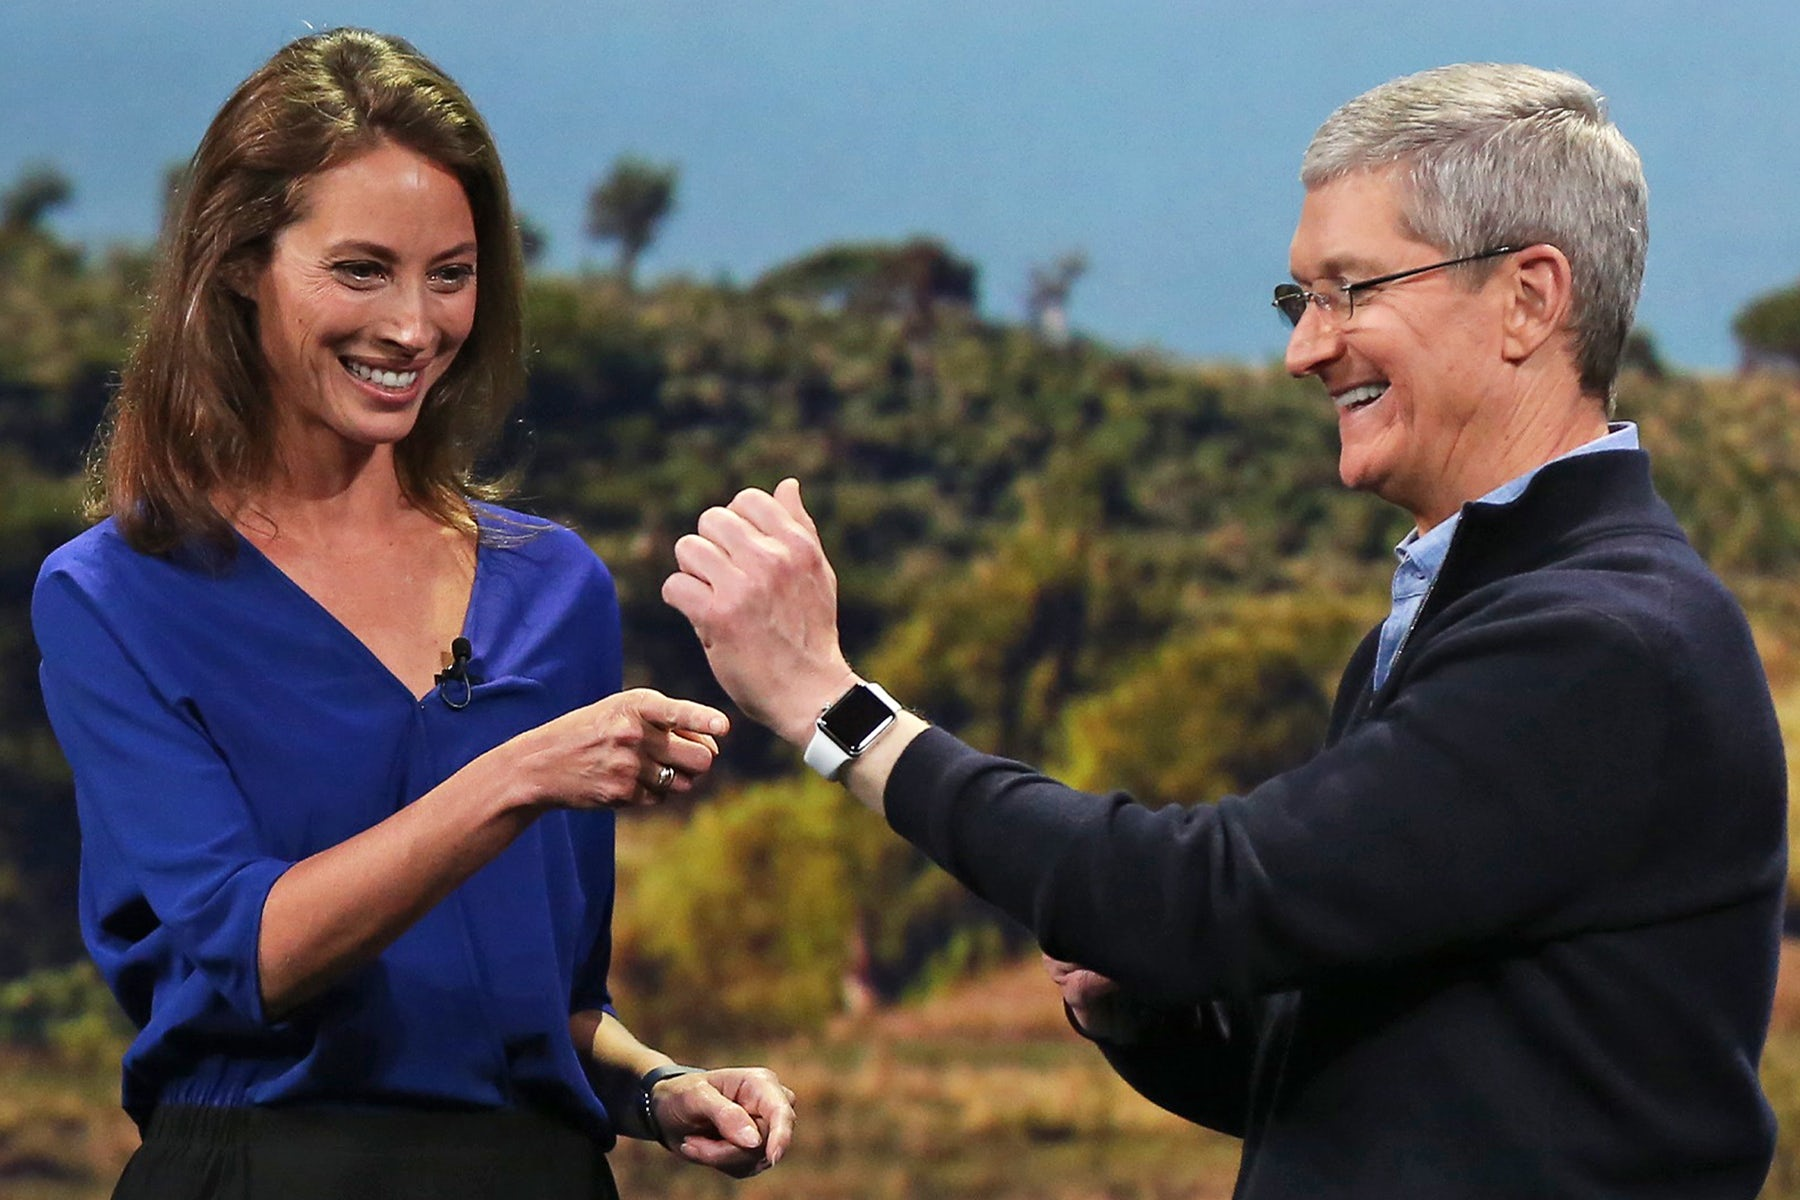 Model Christy Turlington Burns and Apple CEO Tim Cook | Source: Reuters